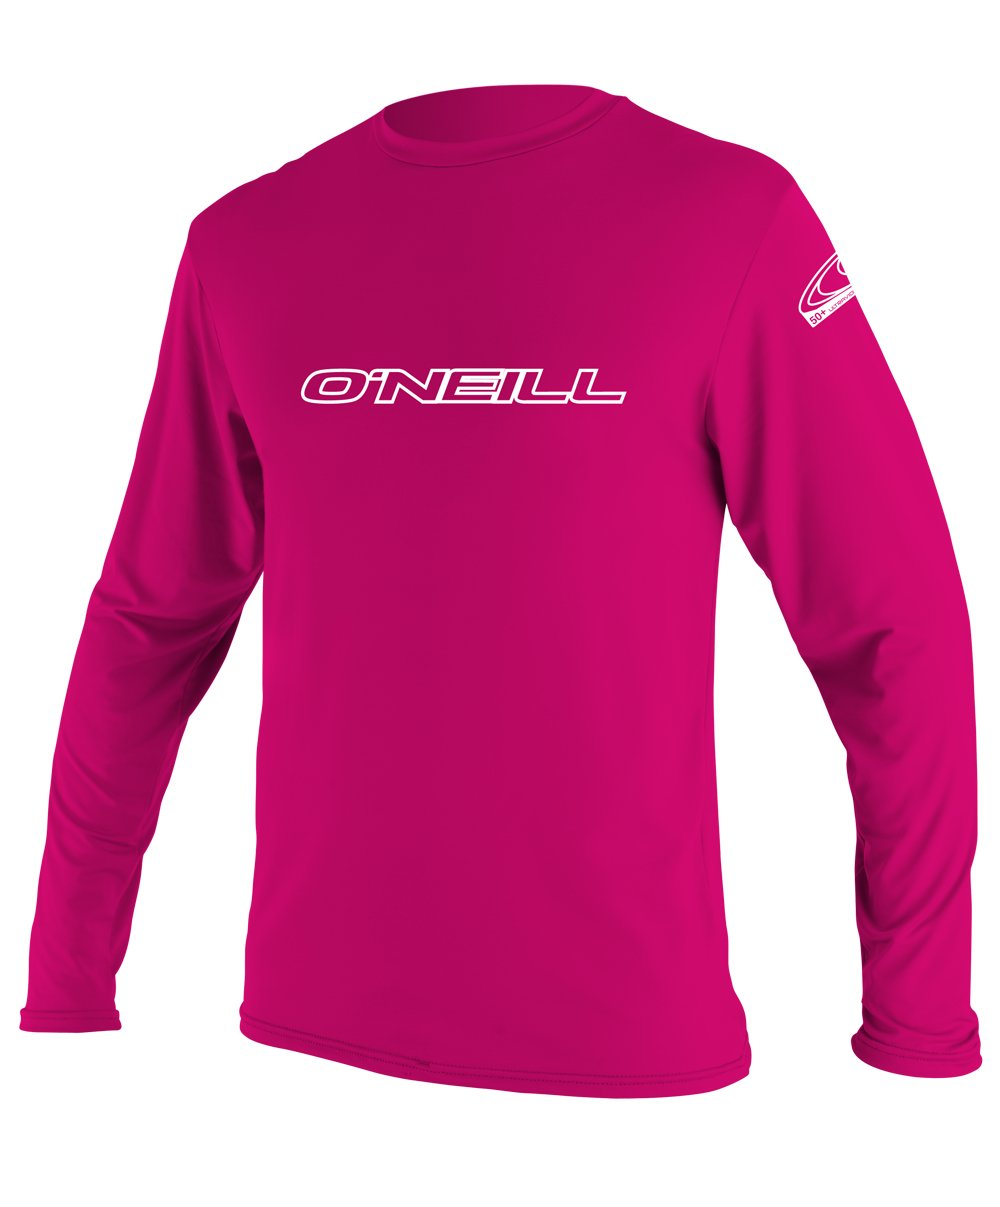 O'Neill Youth Basic Skins UPF 50+ Long Sleeve Sun Shirt, Watermelon, 4 by O'Neill Wetsuits